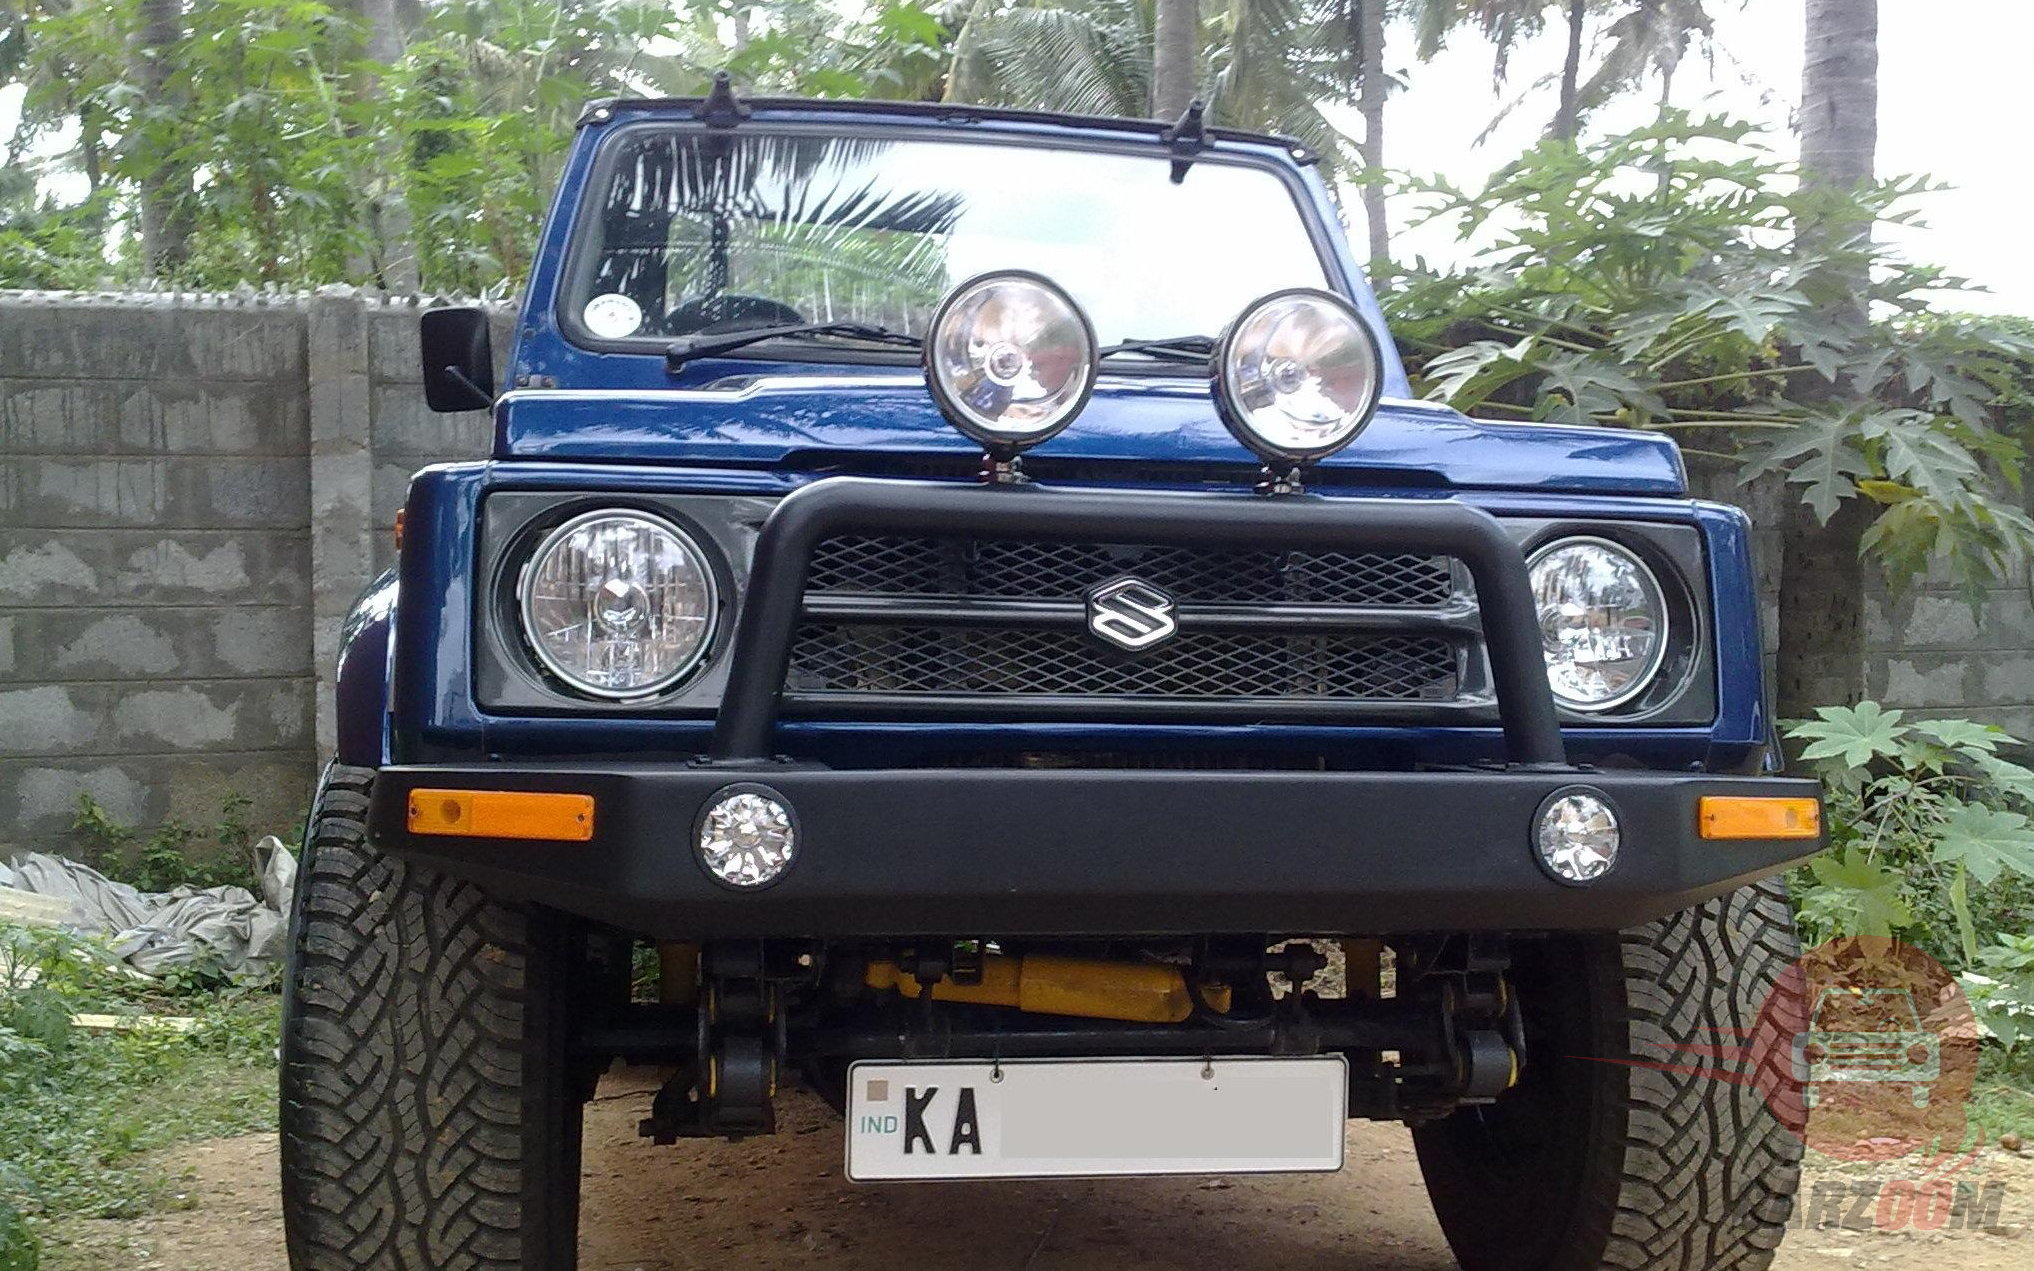 Maruti Suzuki Gypsy King Price In India And Specification